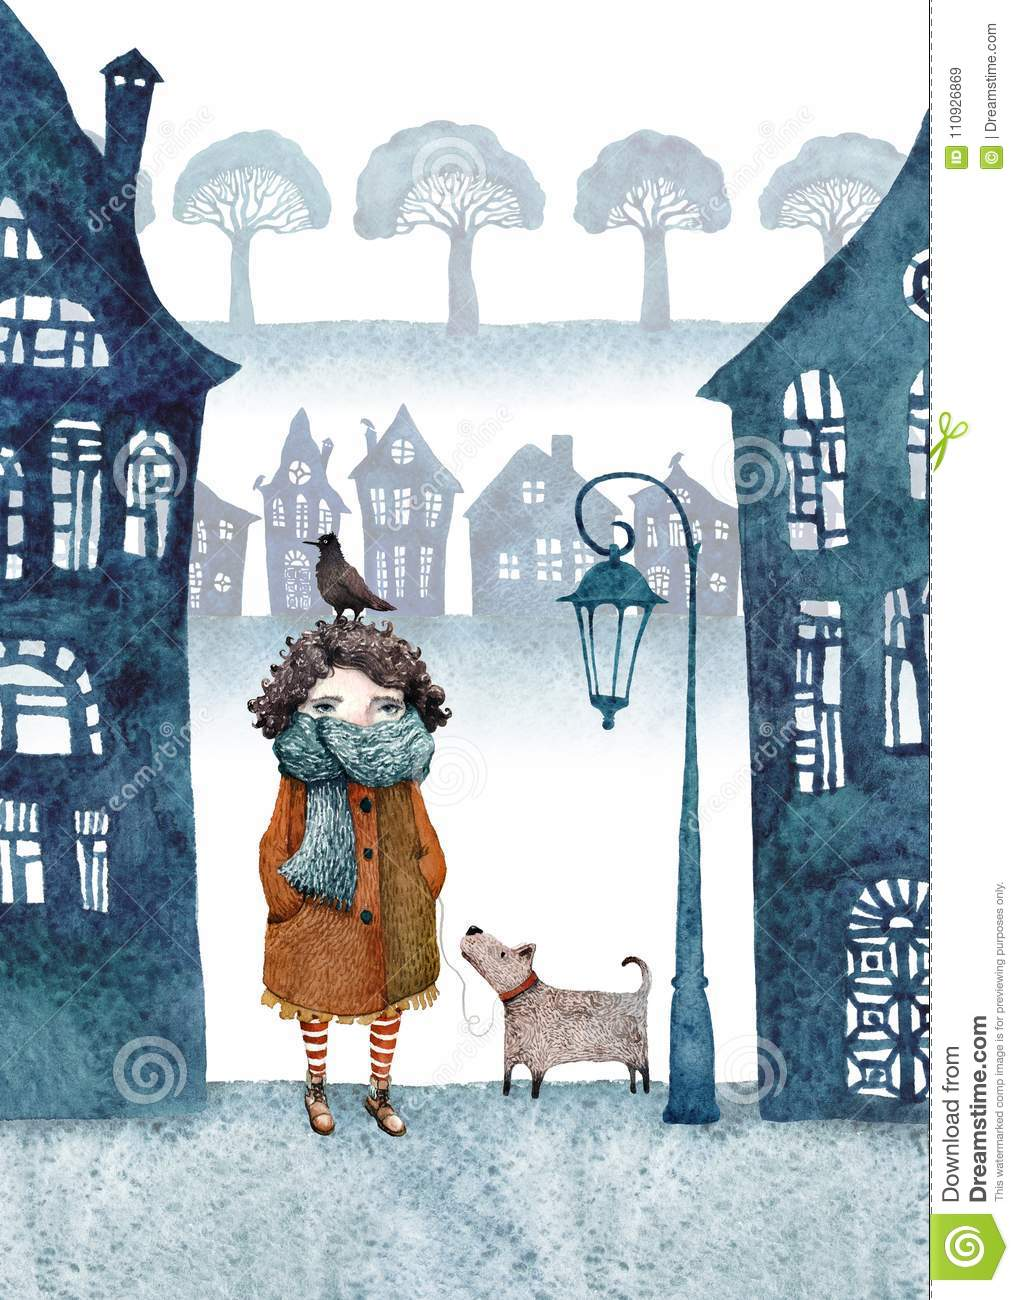 Little girl and her dog walking in a foggy town. Watercolor illustration.